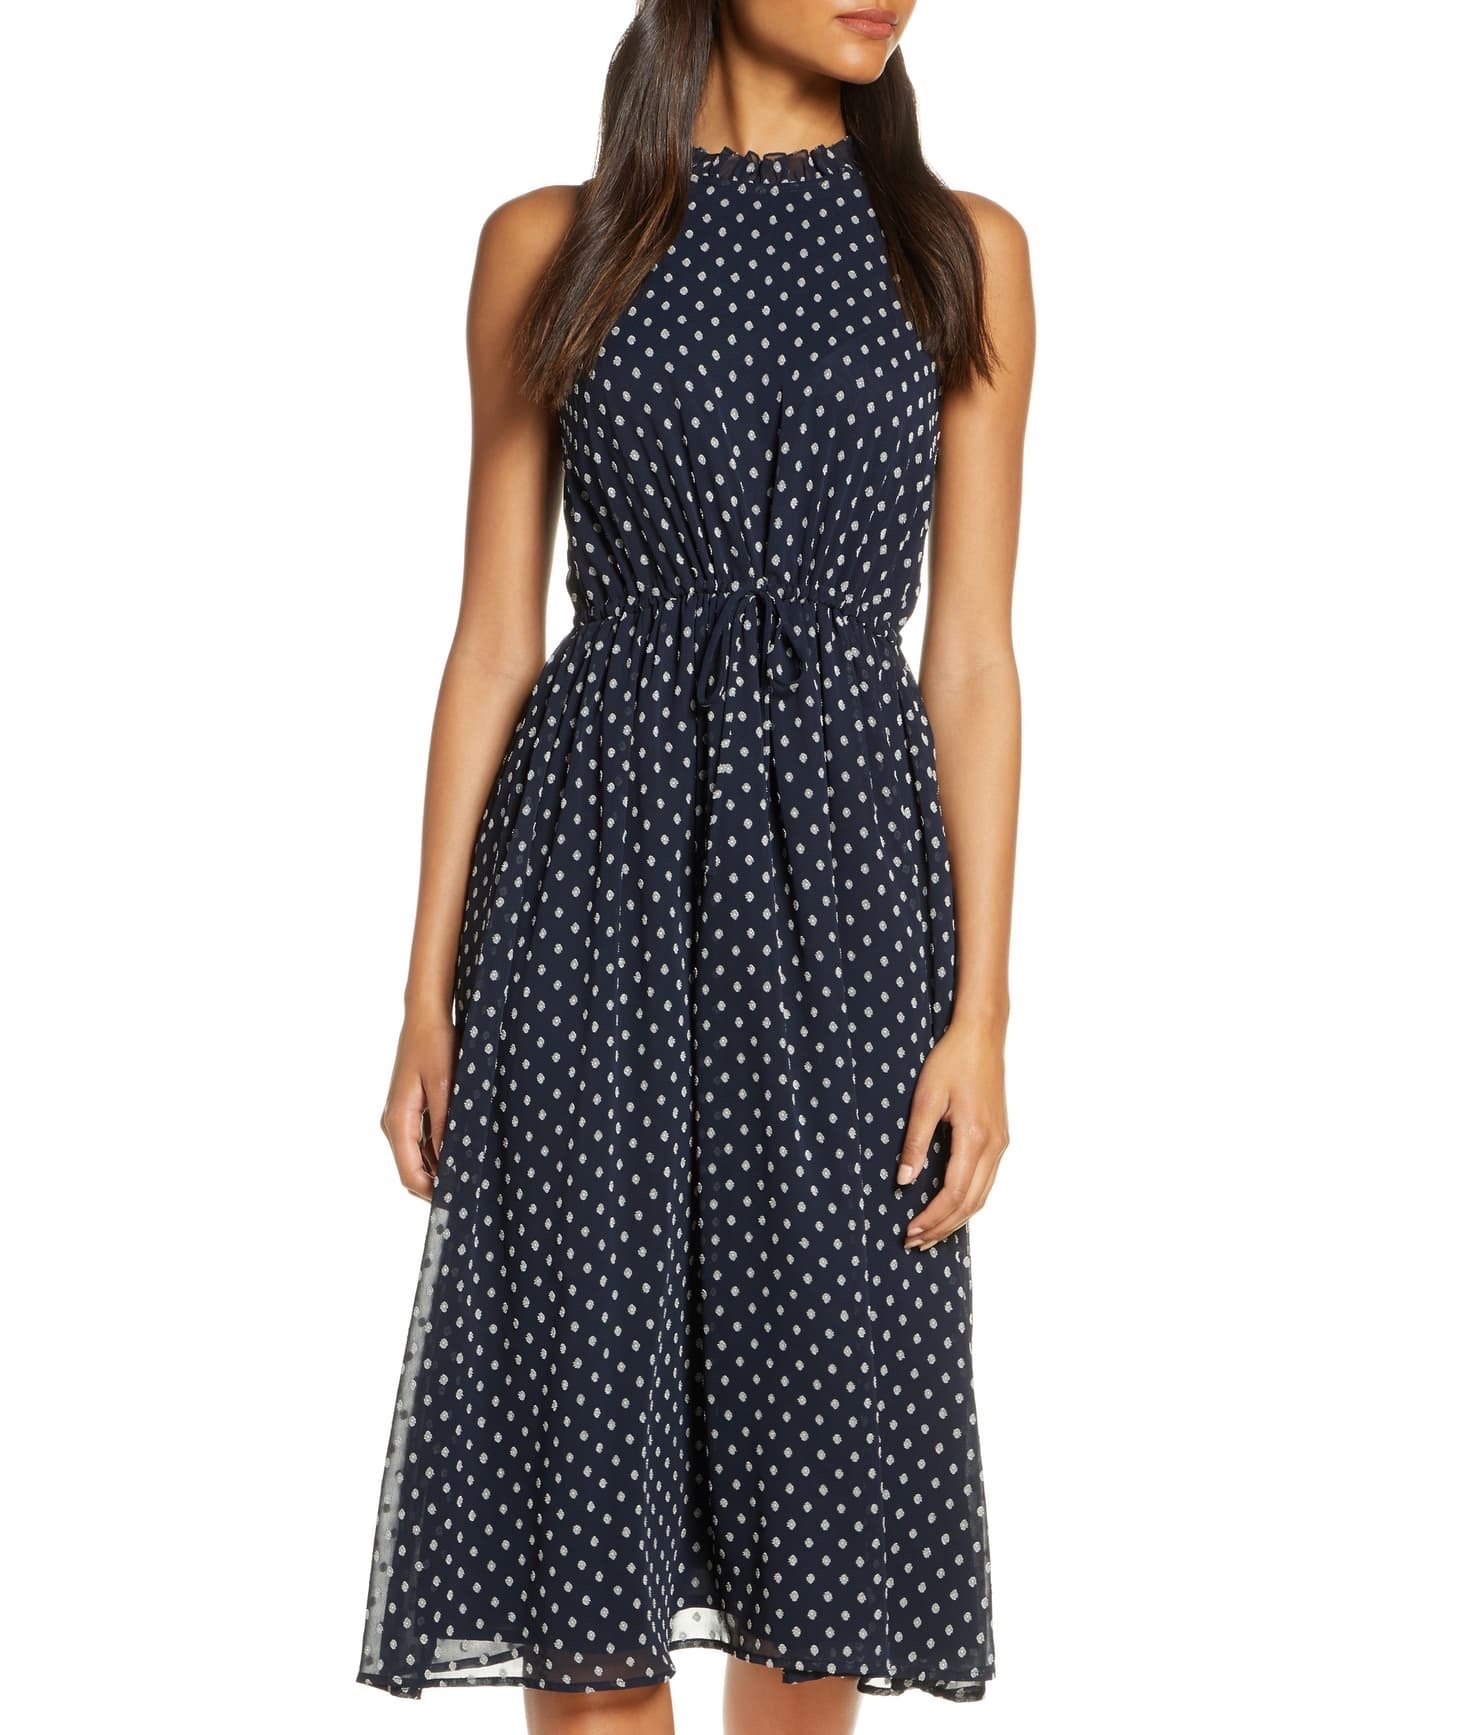 Polka-dot midi dress